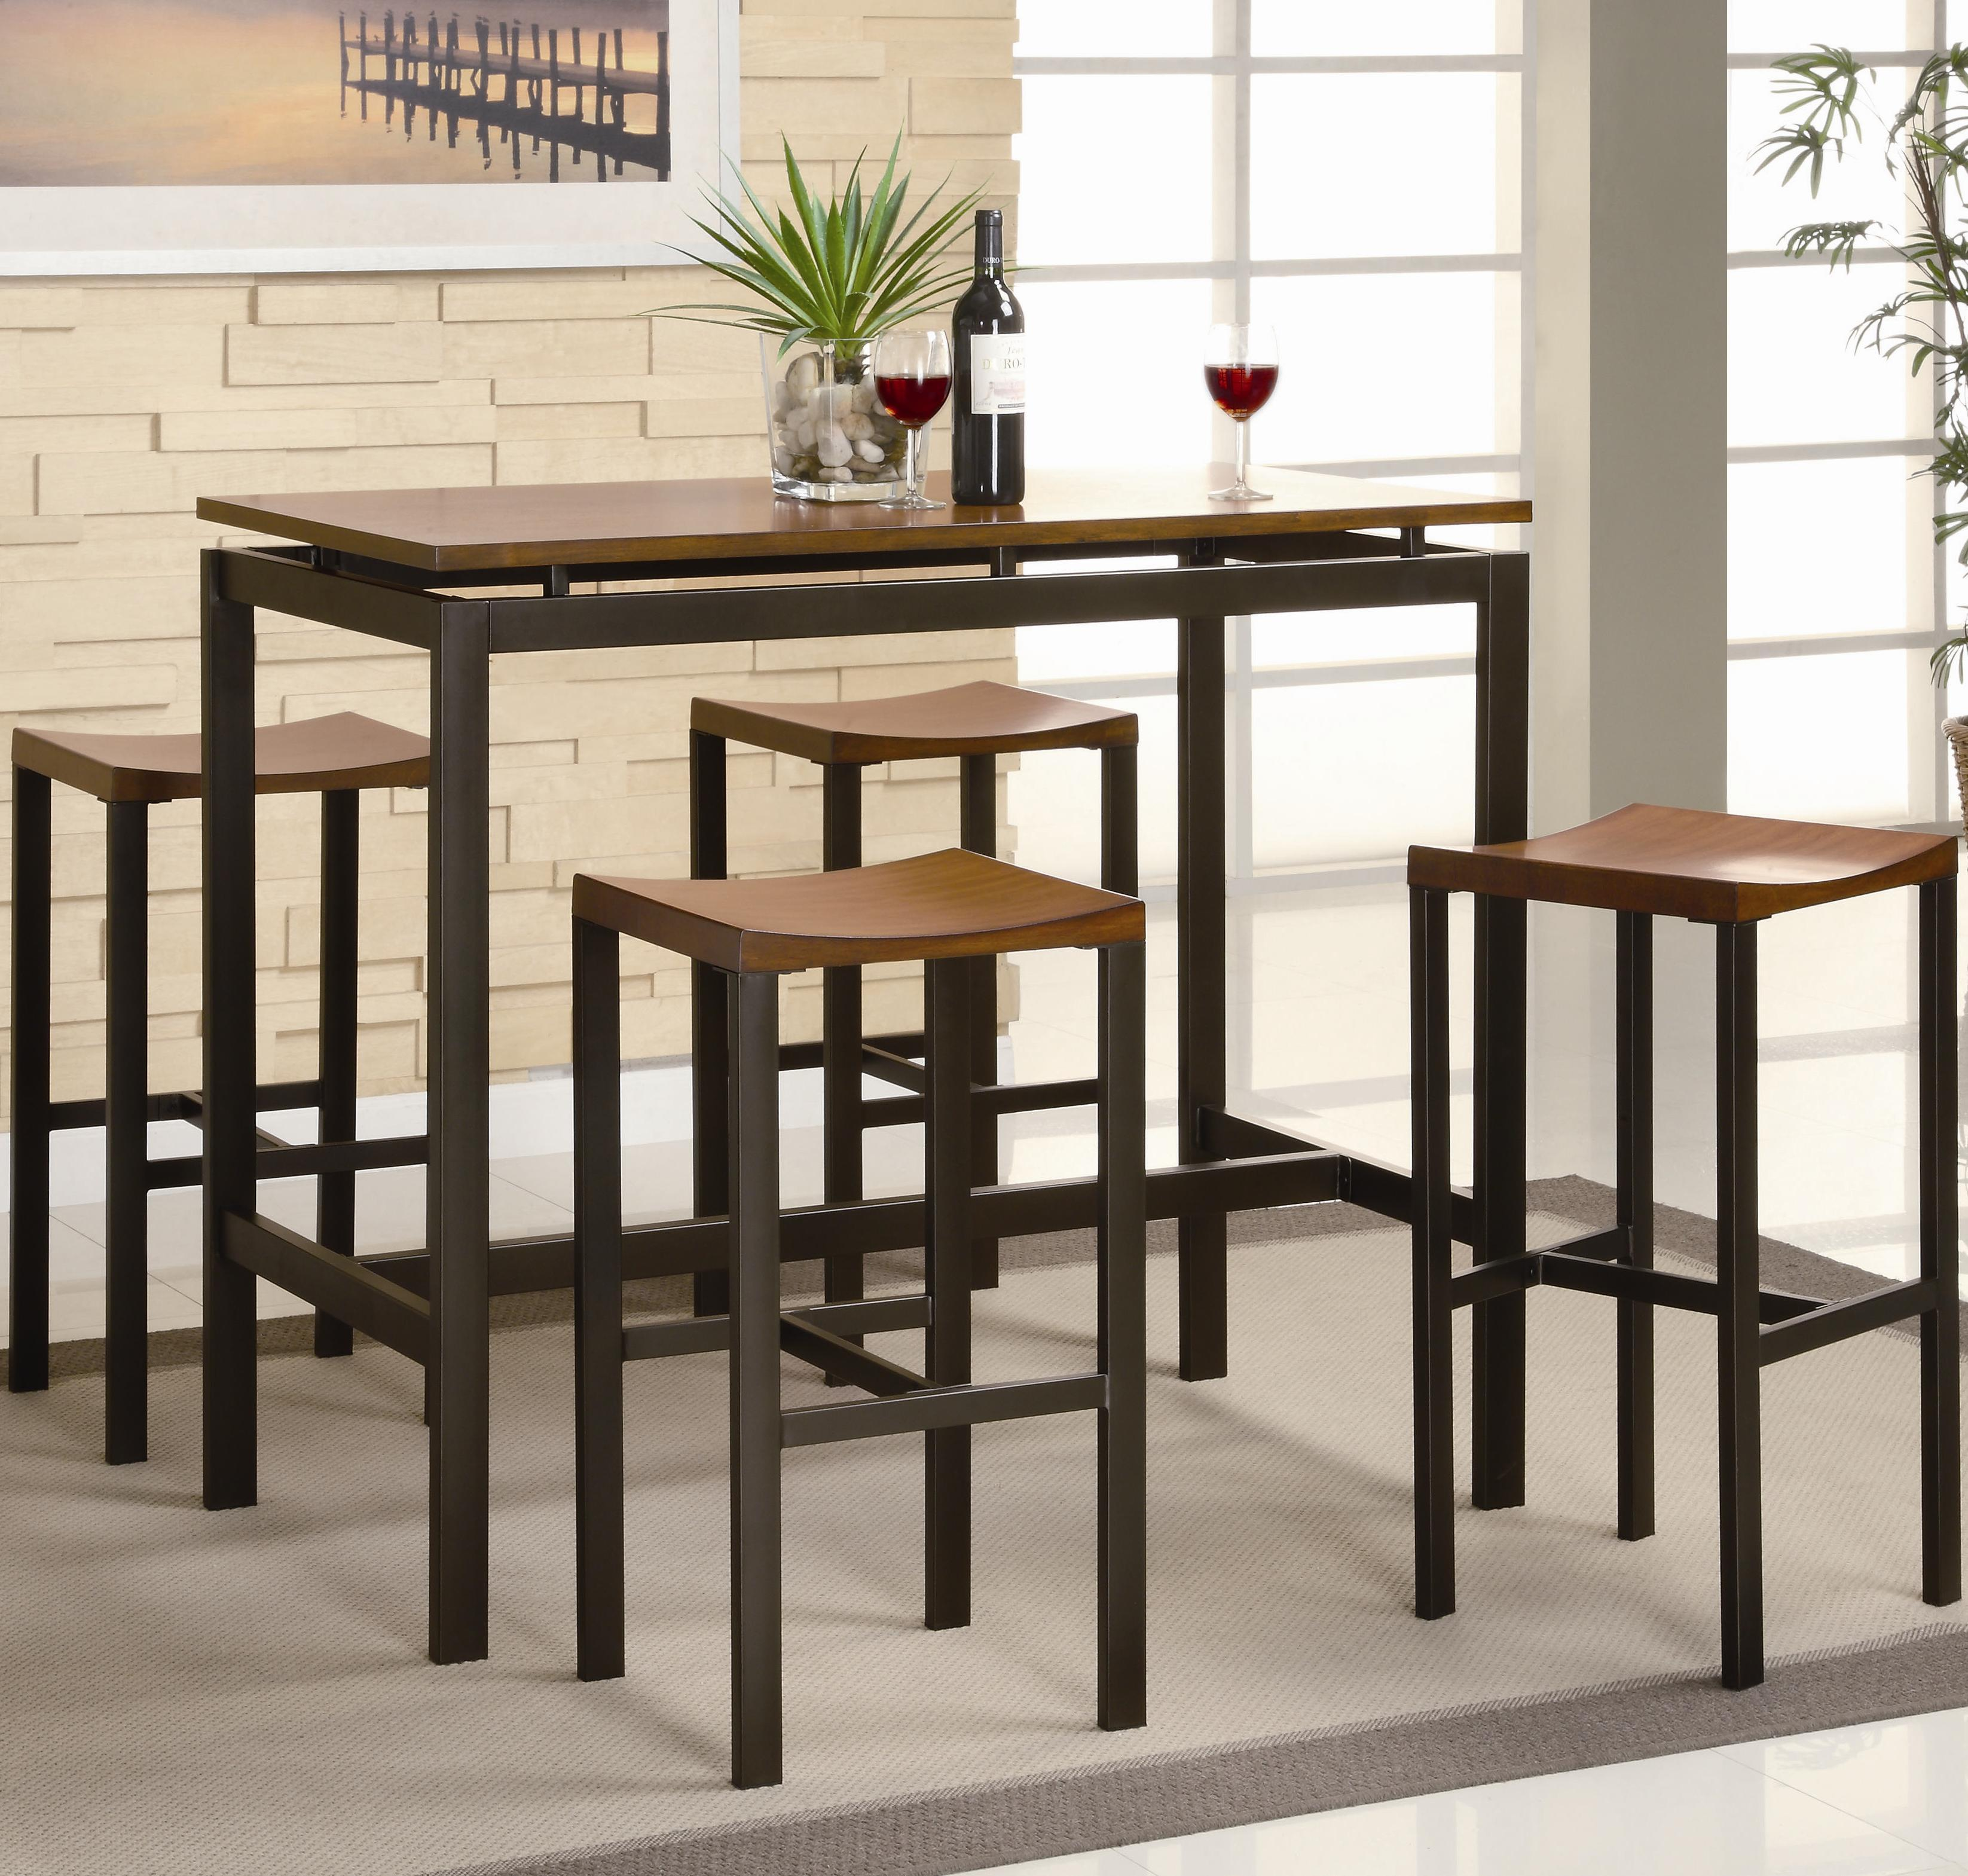 kitchen table stools freestanding sink coaster atlus counter height contemporary black metal with 5 piece dining set